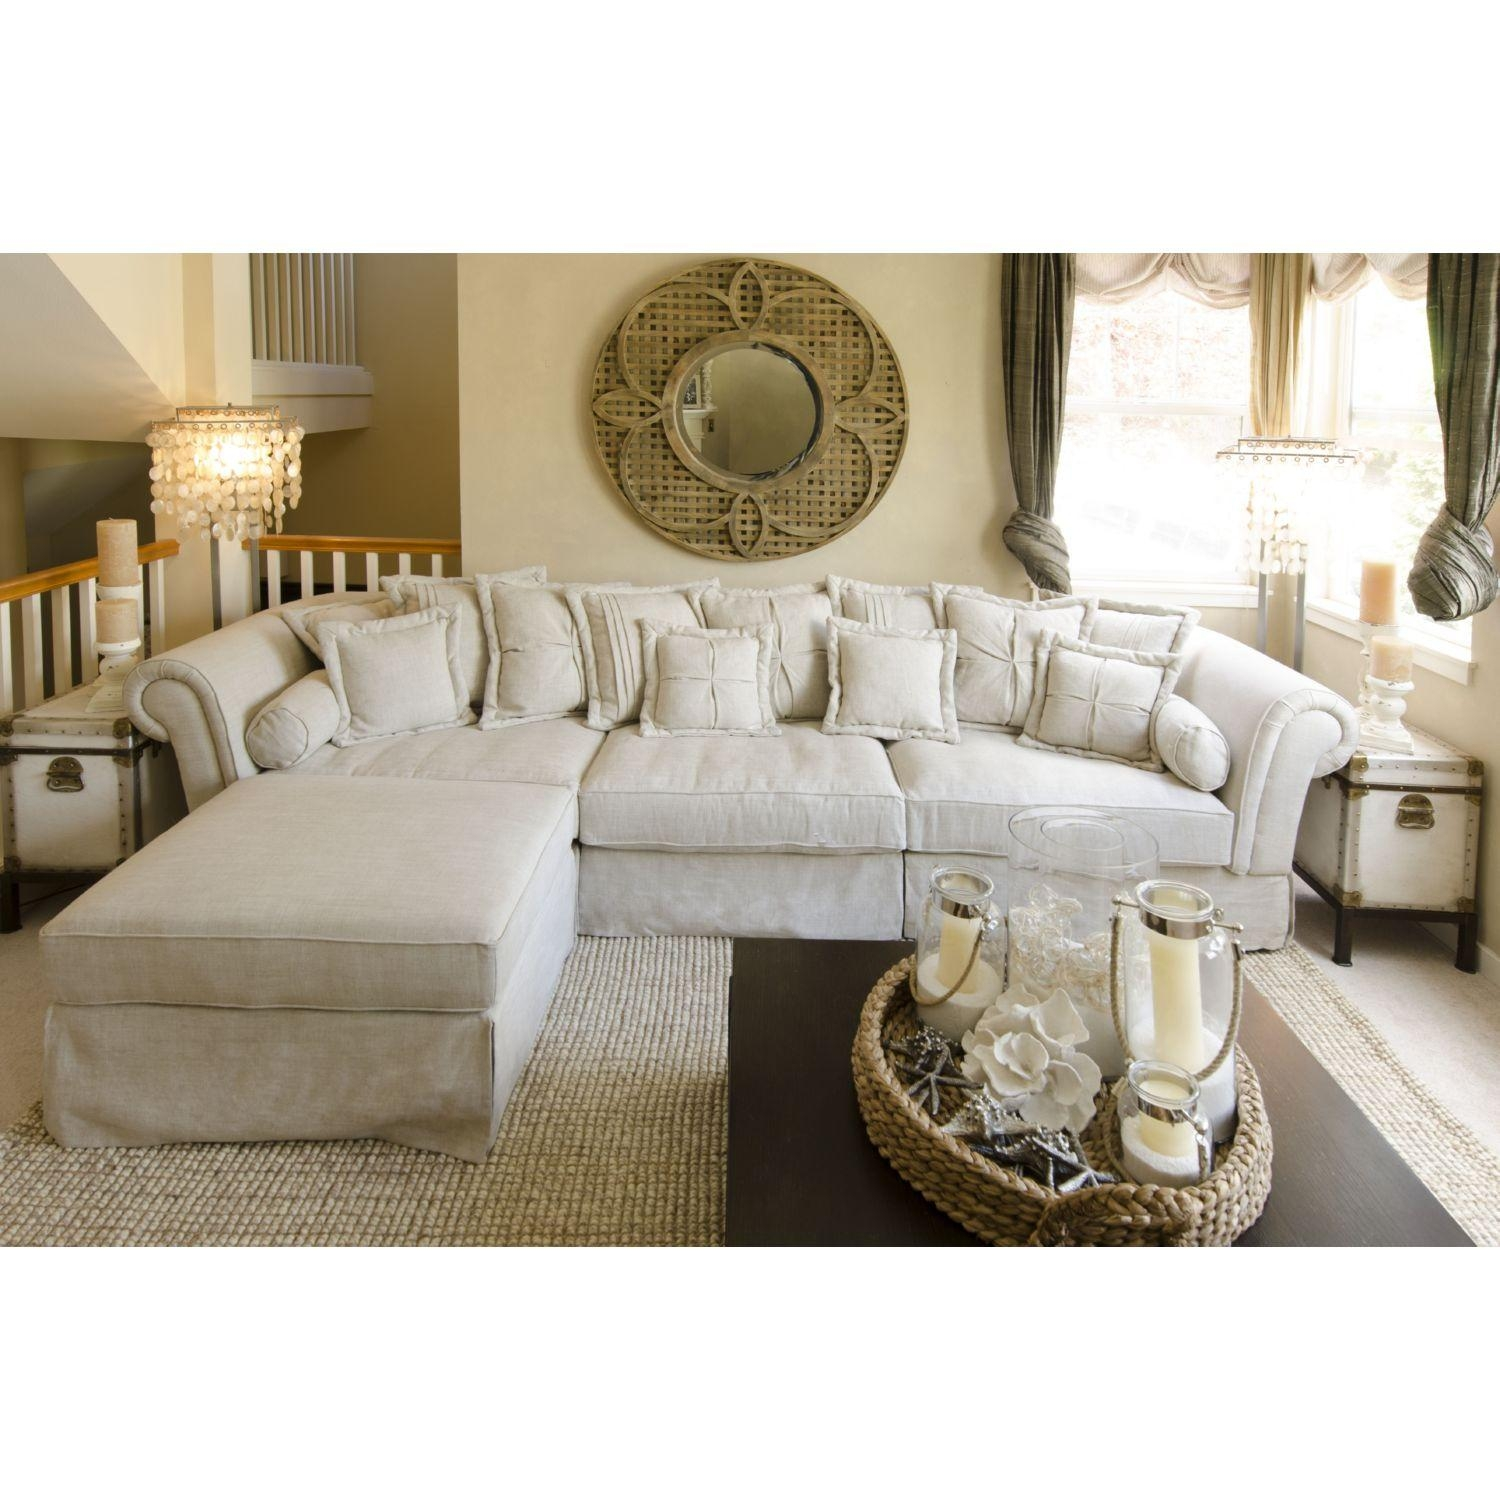 Sofas Center : Shabby Chic Sofas Marvelous Photo Ideas Sofa Covers Intended For Shabby Chic Sofas Cheap (View 7 of 20)